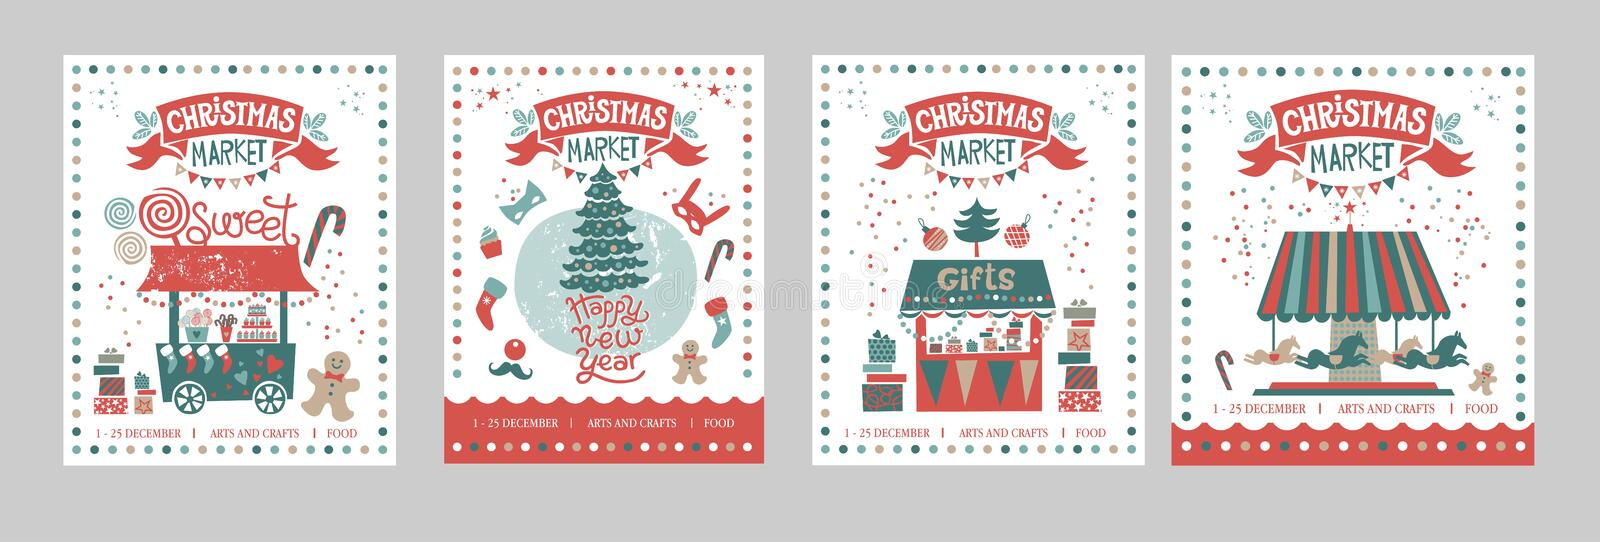 A set of posters or postcards Christmas market, Happy New year. And Christmas with festive decor, garlands, gifts, a carousel with horses, Christmas sweets royalty free illustration